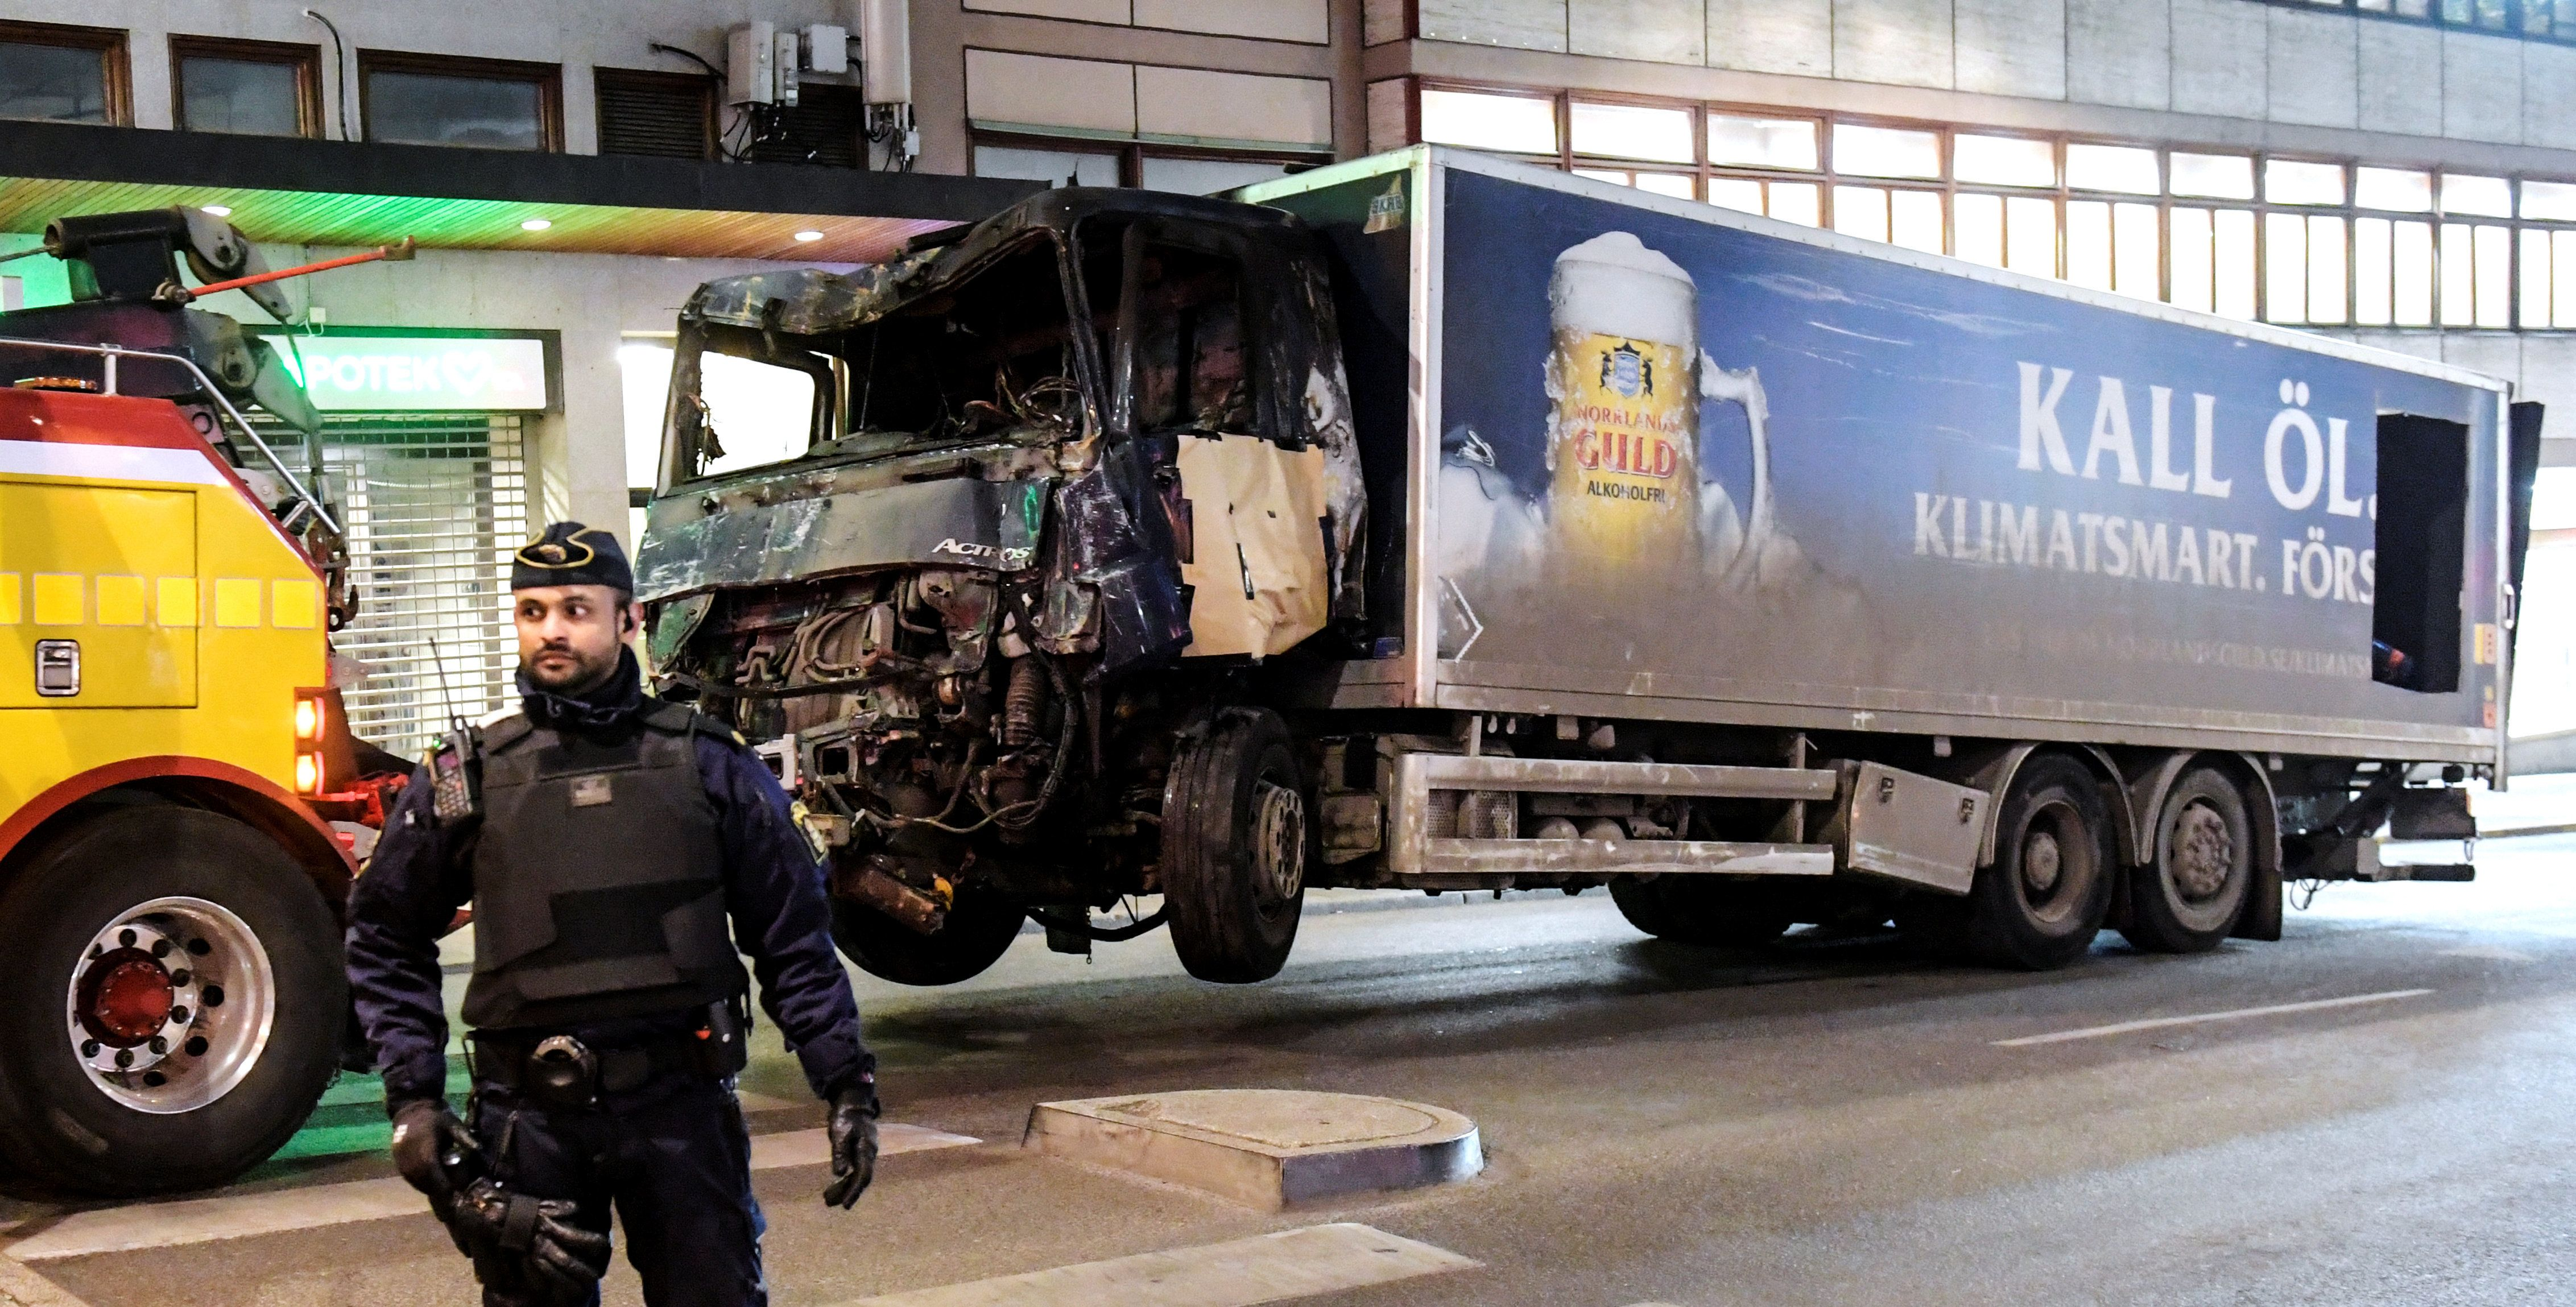 Stockholm Attack Victims Identified As One Brit, One Belgian And 2